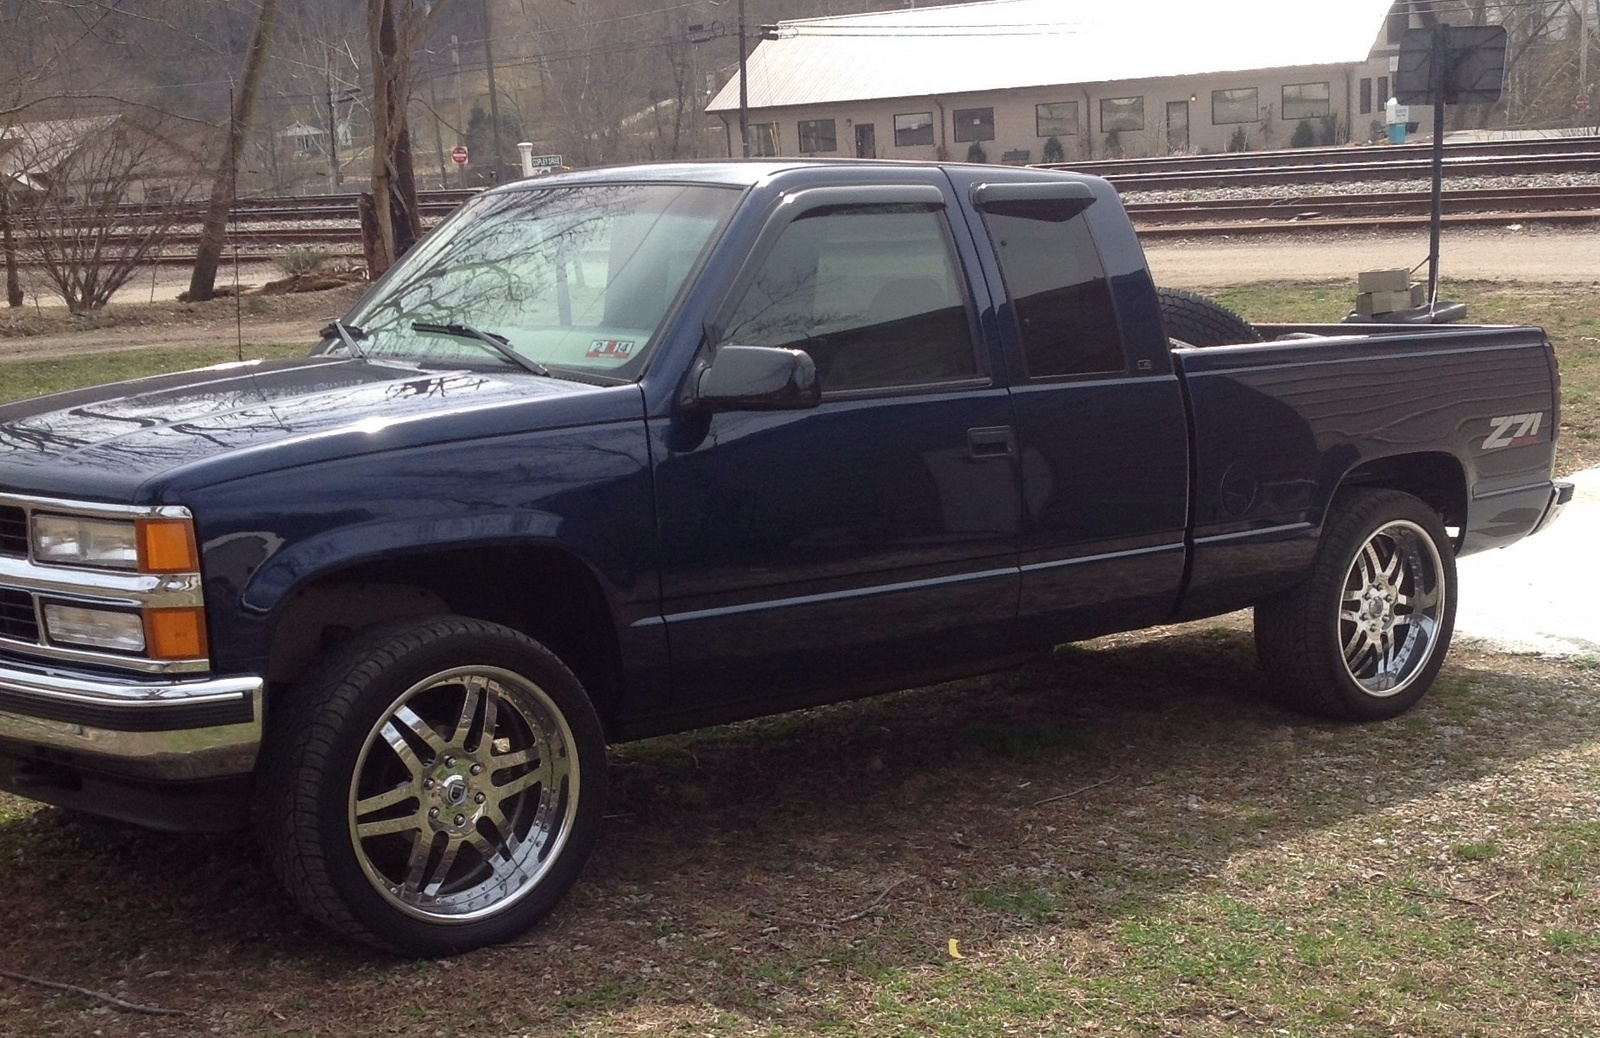 All Chevy 1999 chevrolet c2500 : Chevrolet C/K 1500 Questions - I have a 1999 chevy silverado z71 k ...